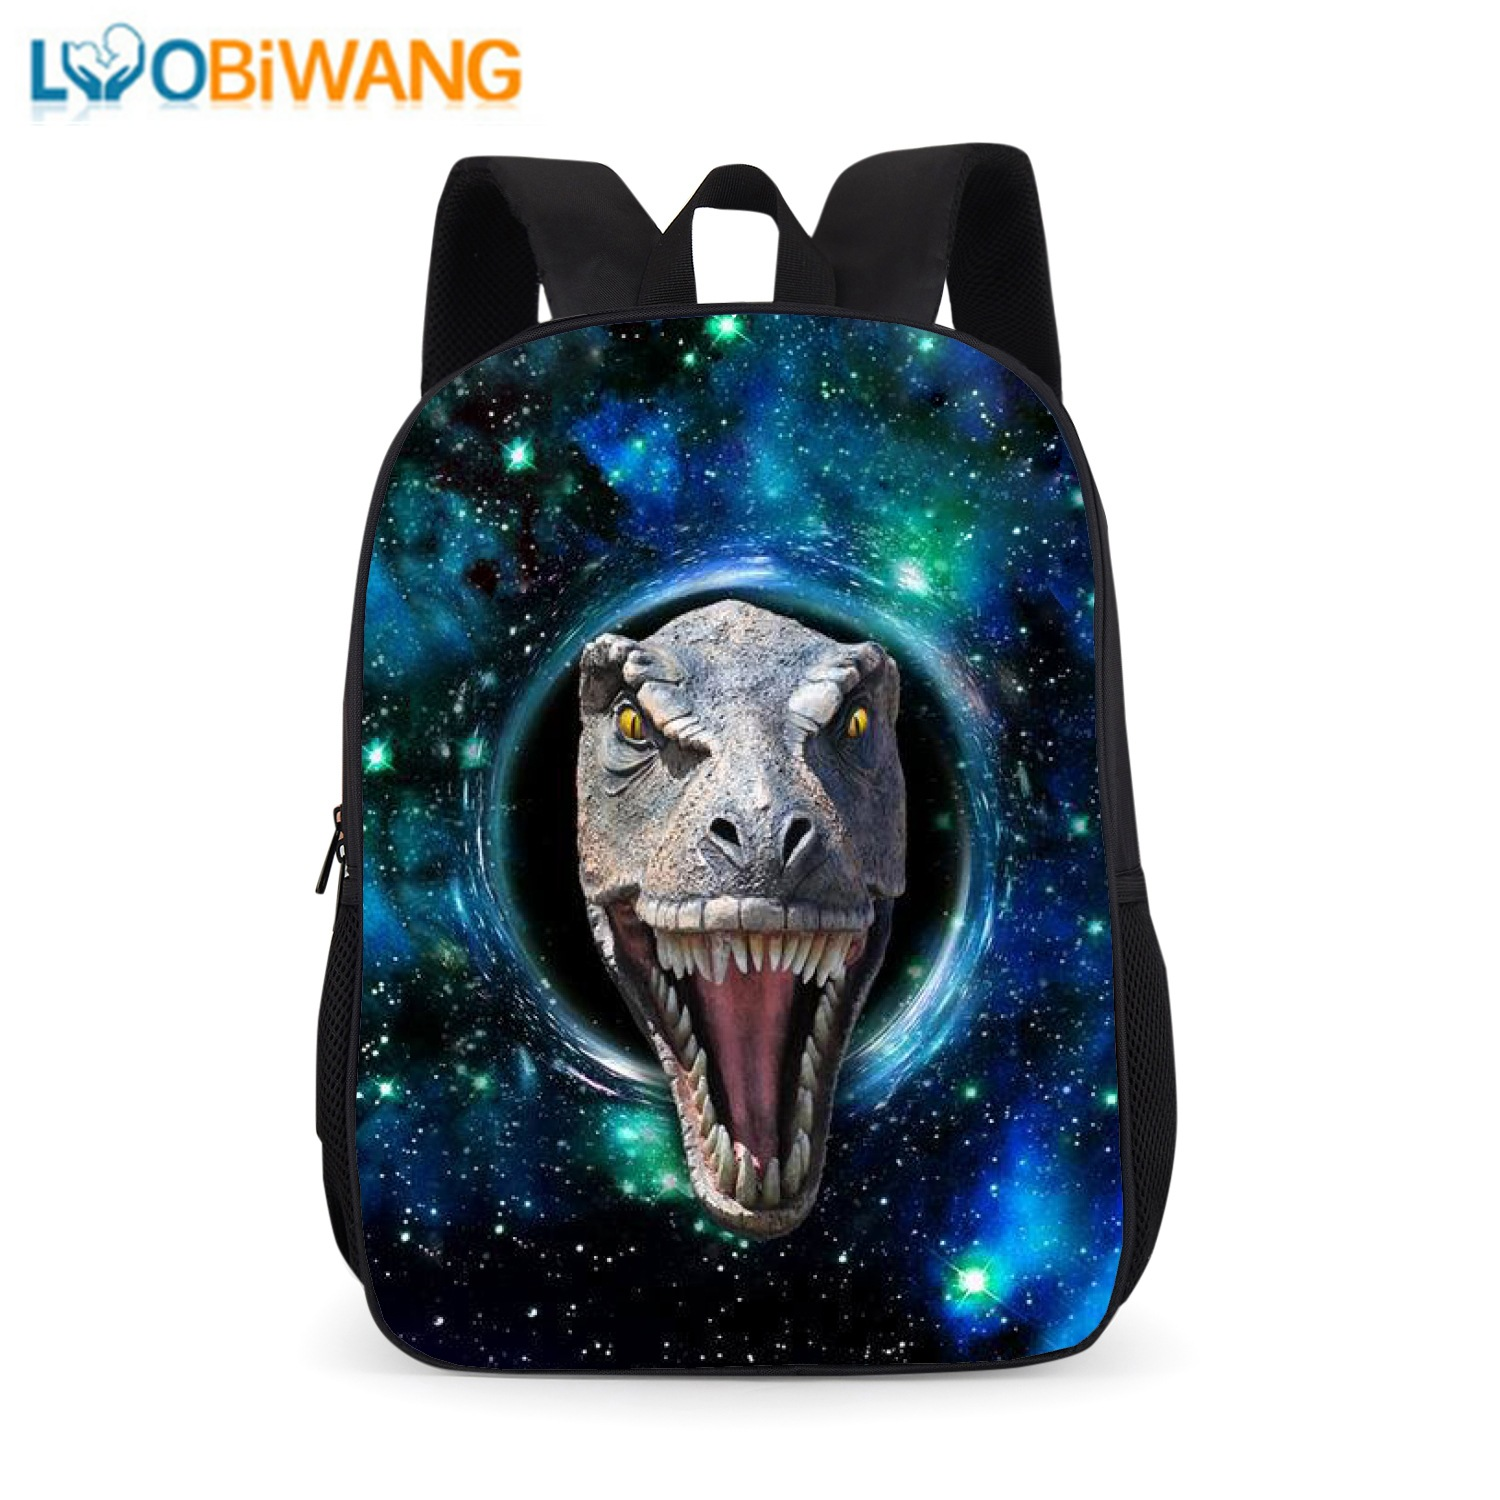 2018 New Style Dinosaur Pattern Backpack Hot Sales School Bag